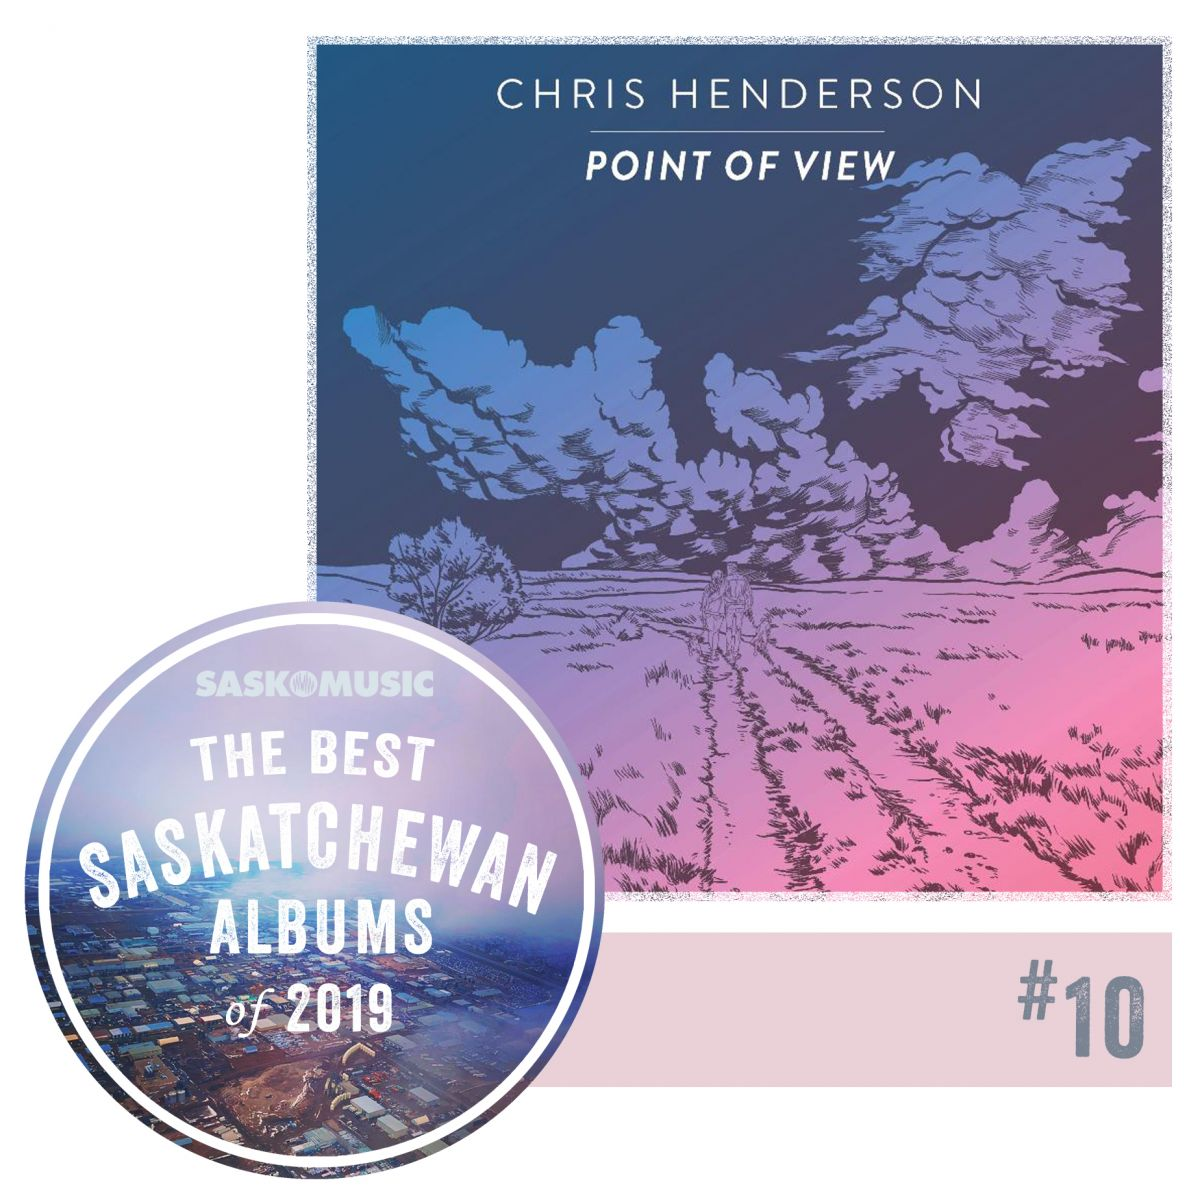 Chris Henderson - Point of View